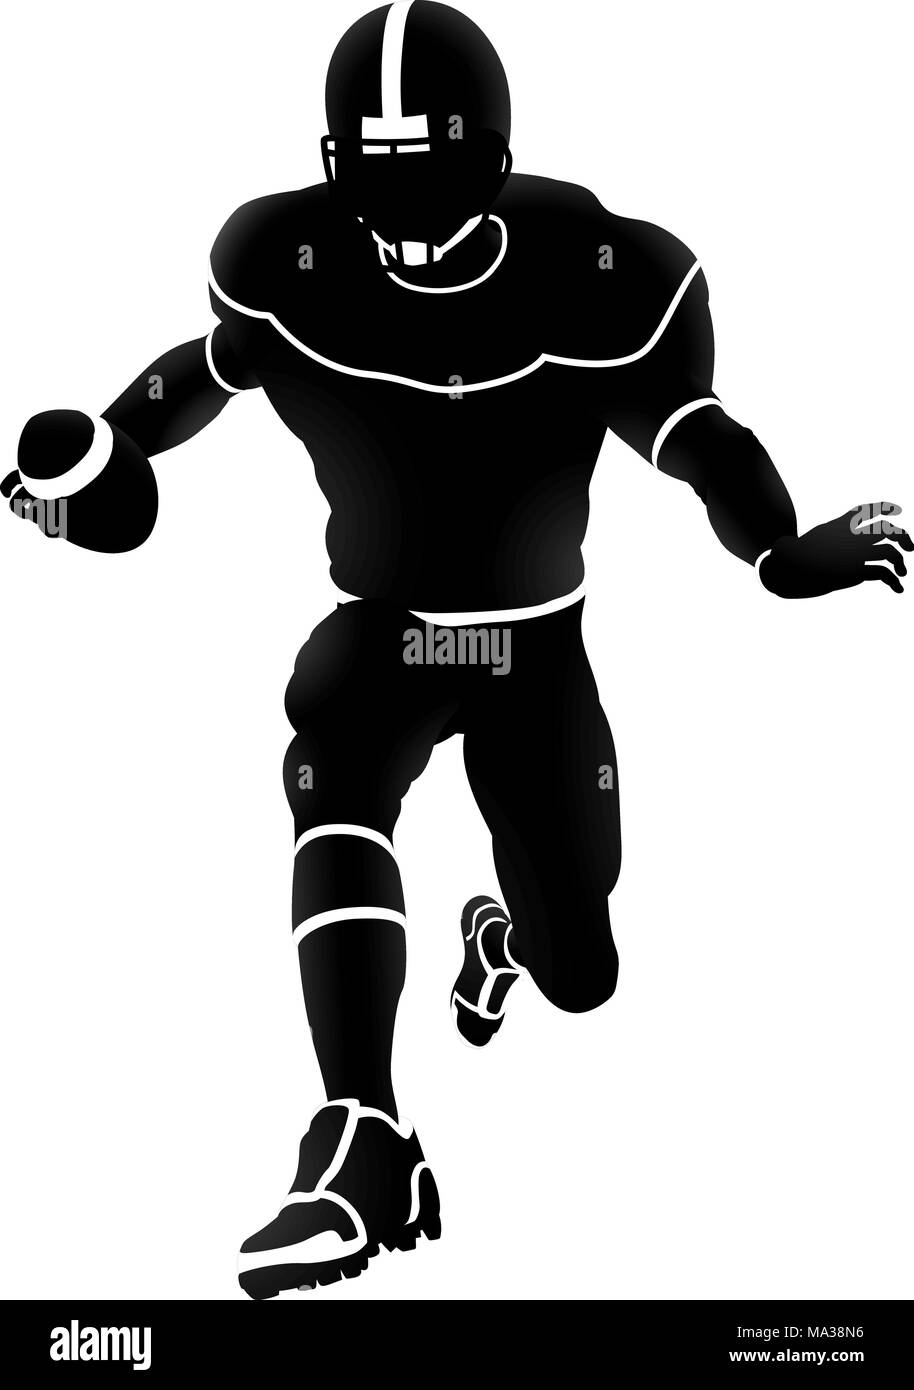 American Football Player Silhouette Stock Vector Art Illustration